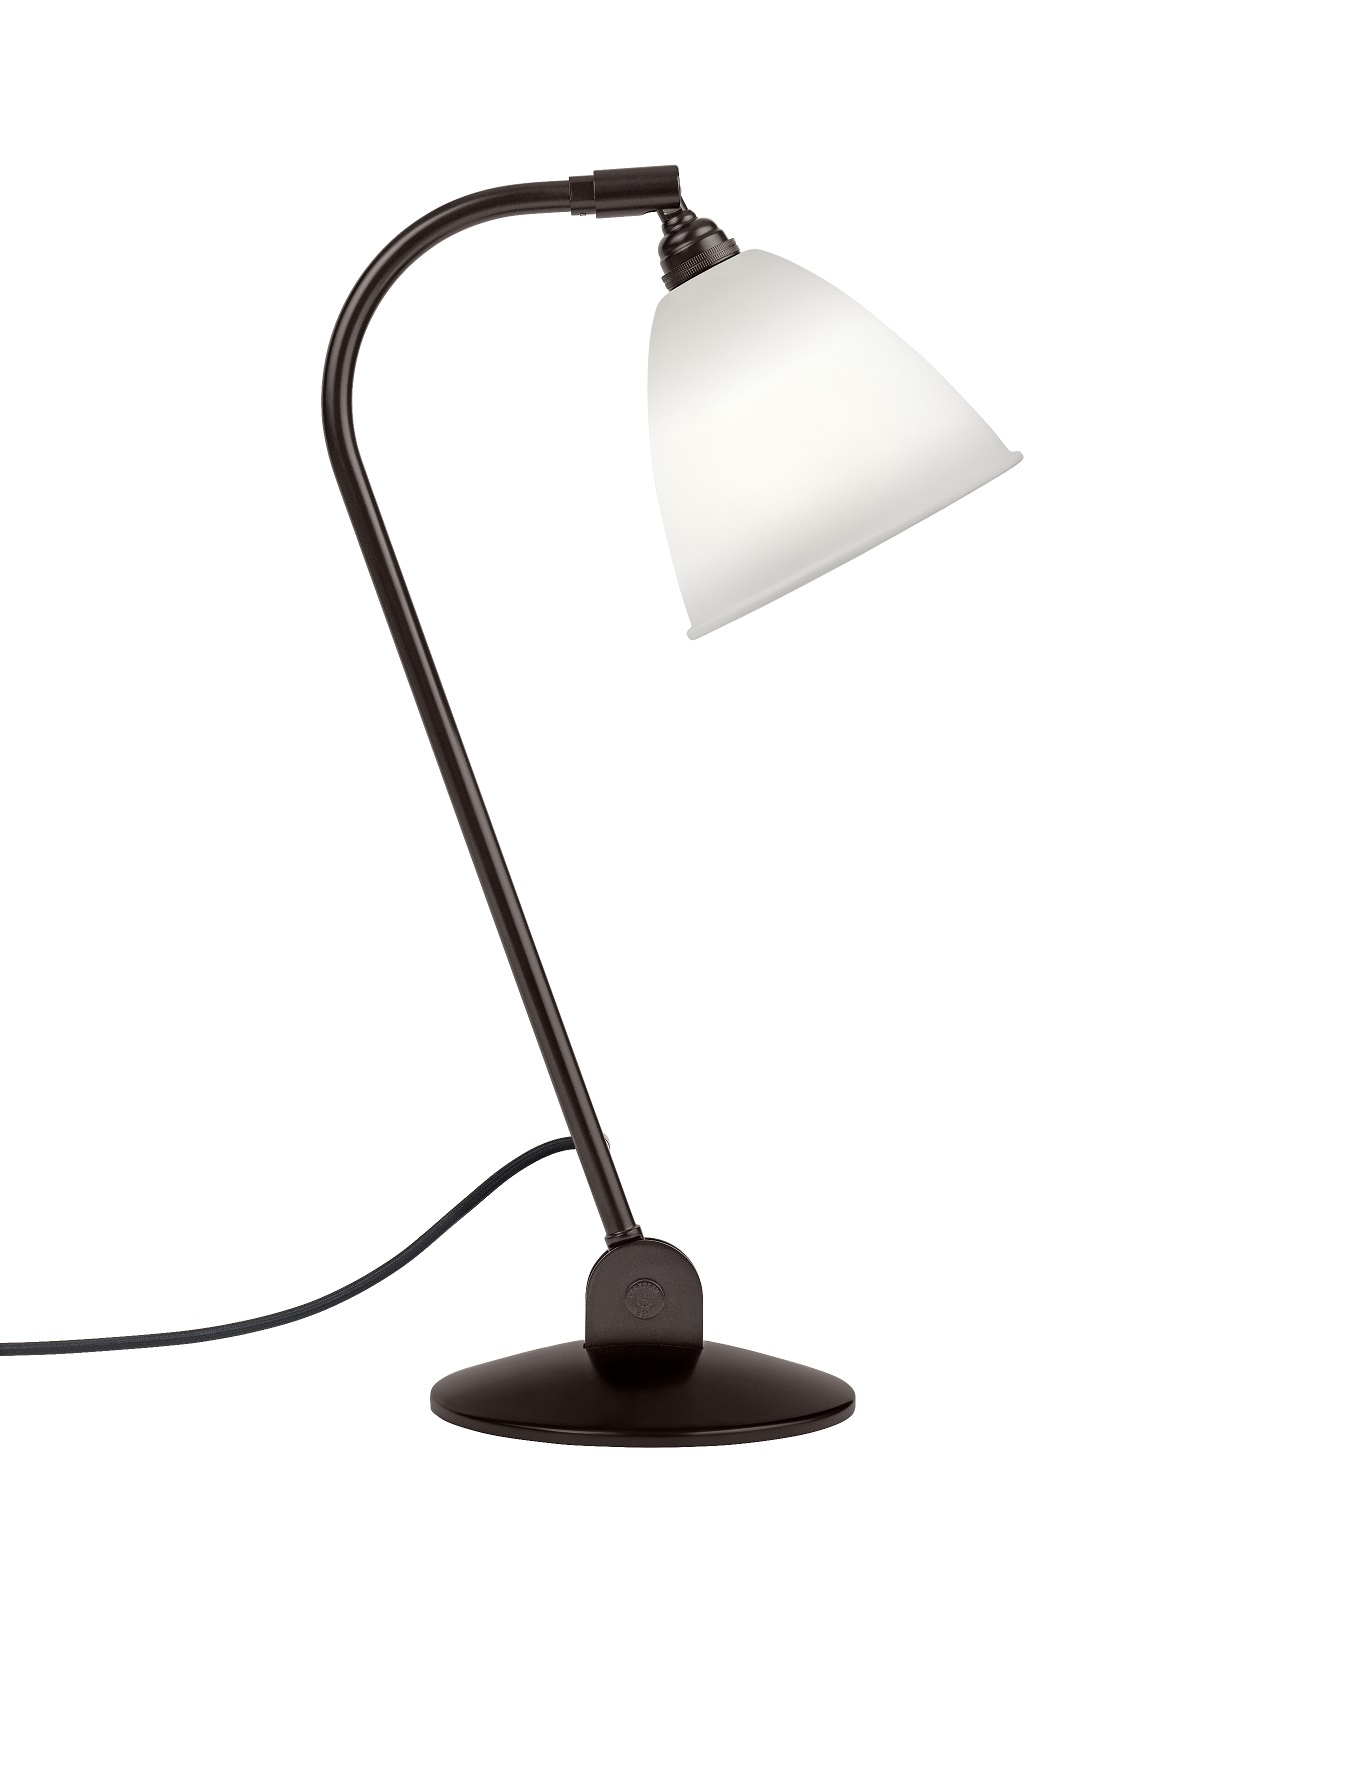 Billede af BL2 Bordlampe China Bone/Sort Messing - Bestlite